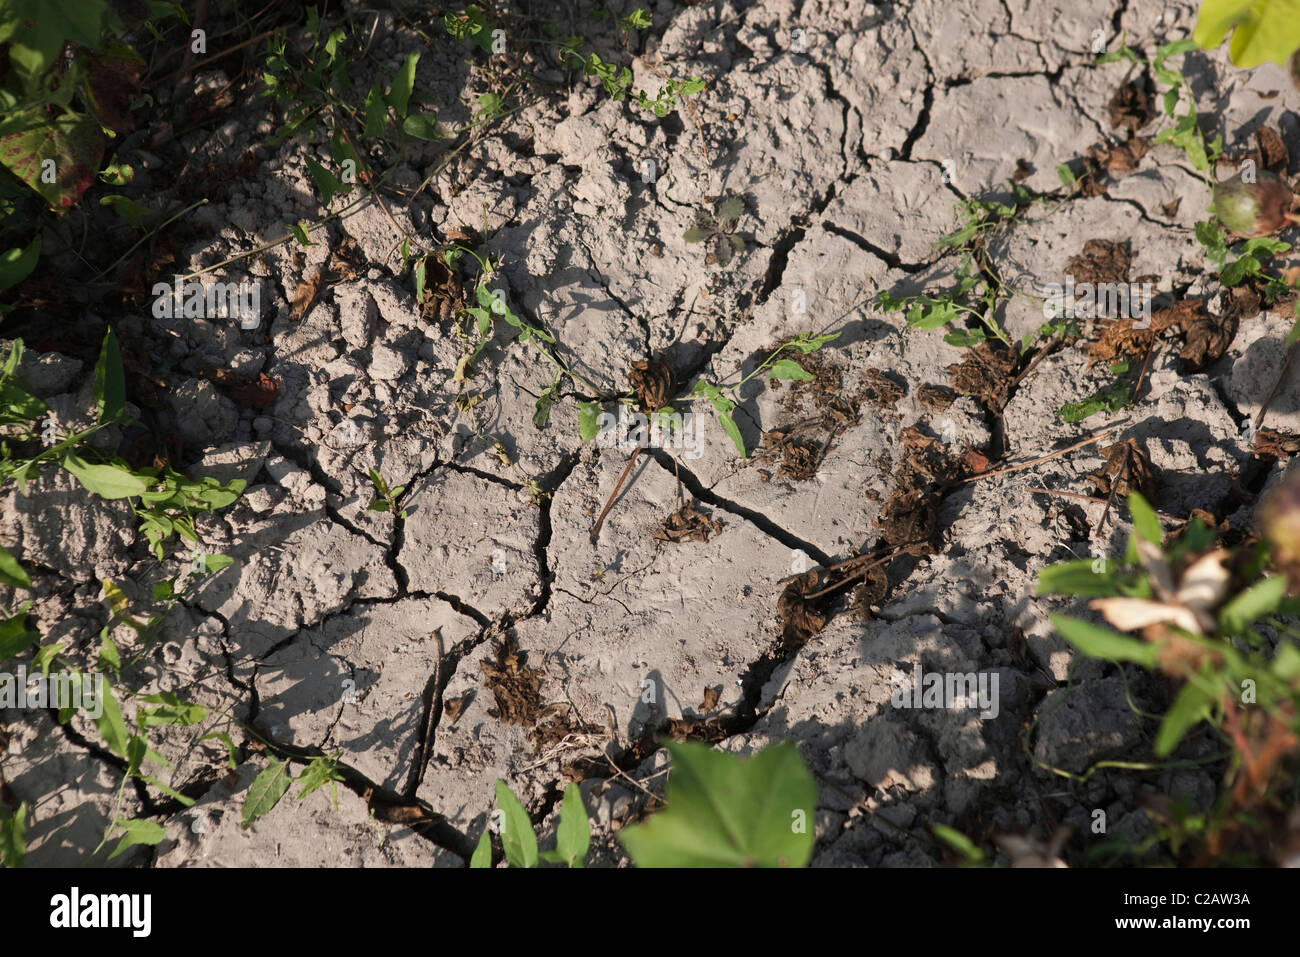 Dry, cracked mud - Stock Image